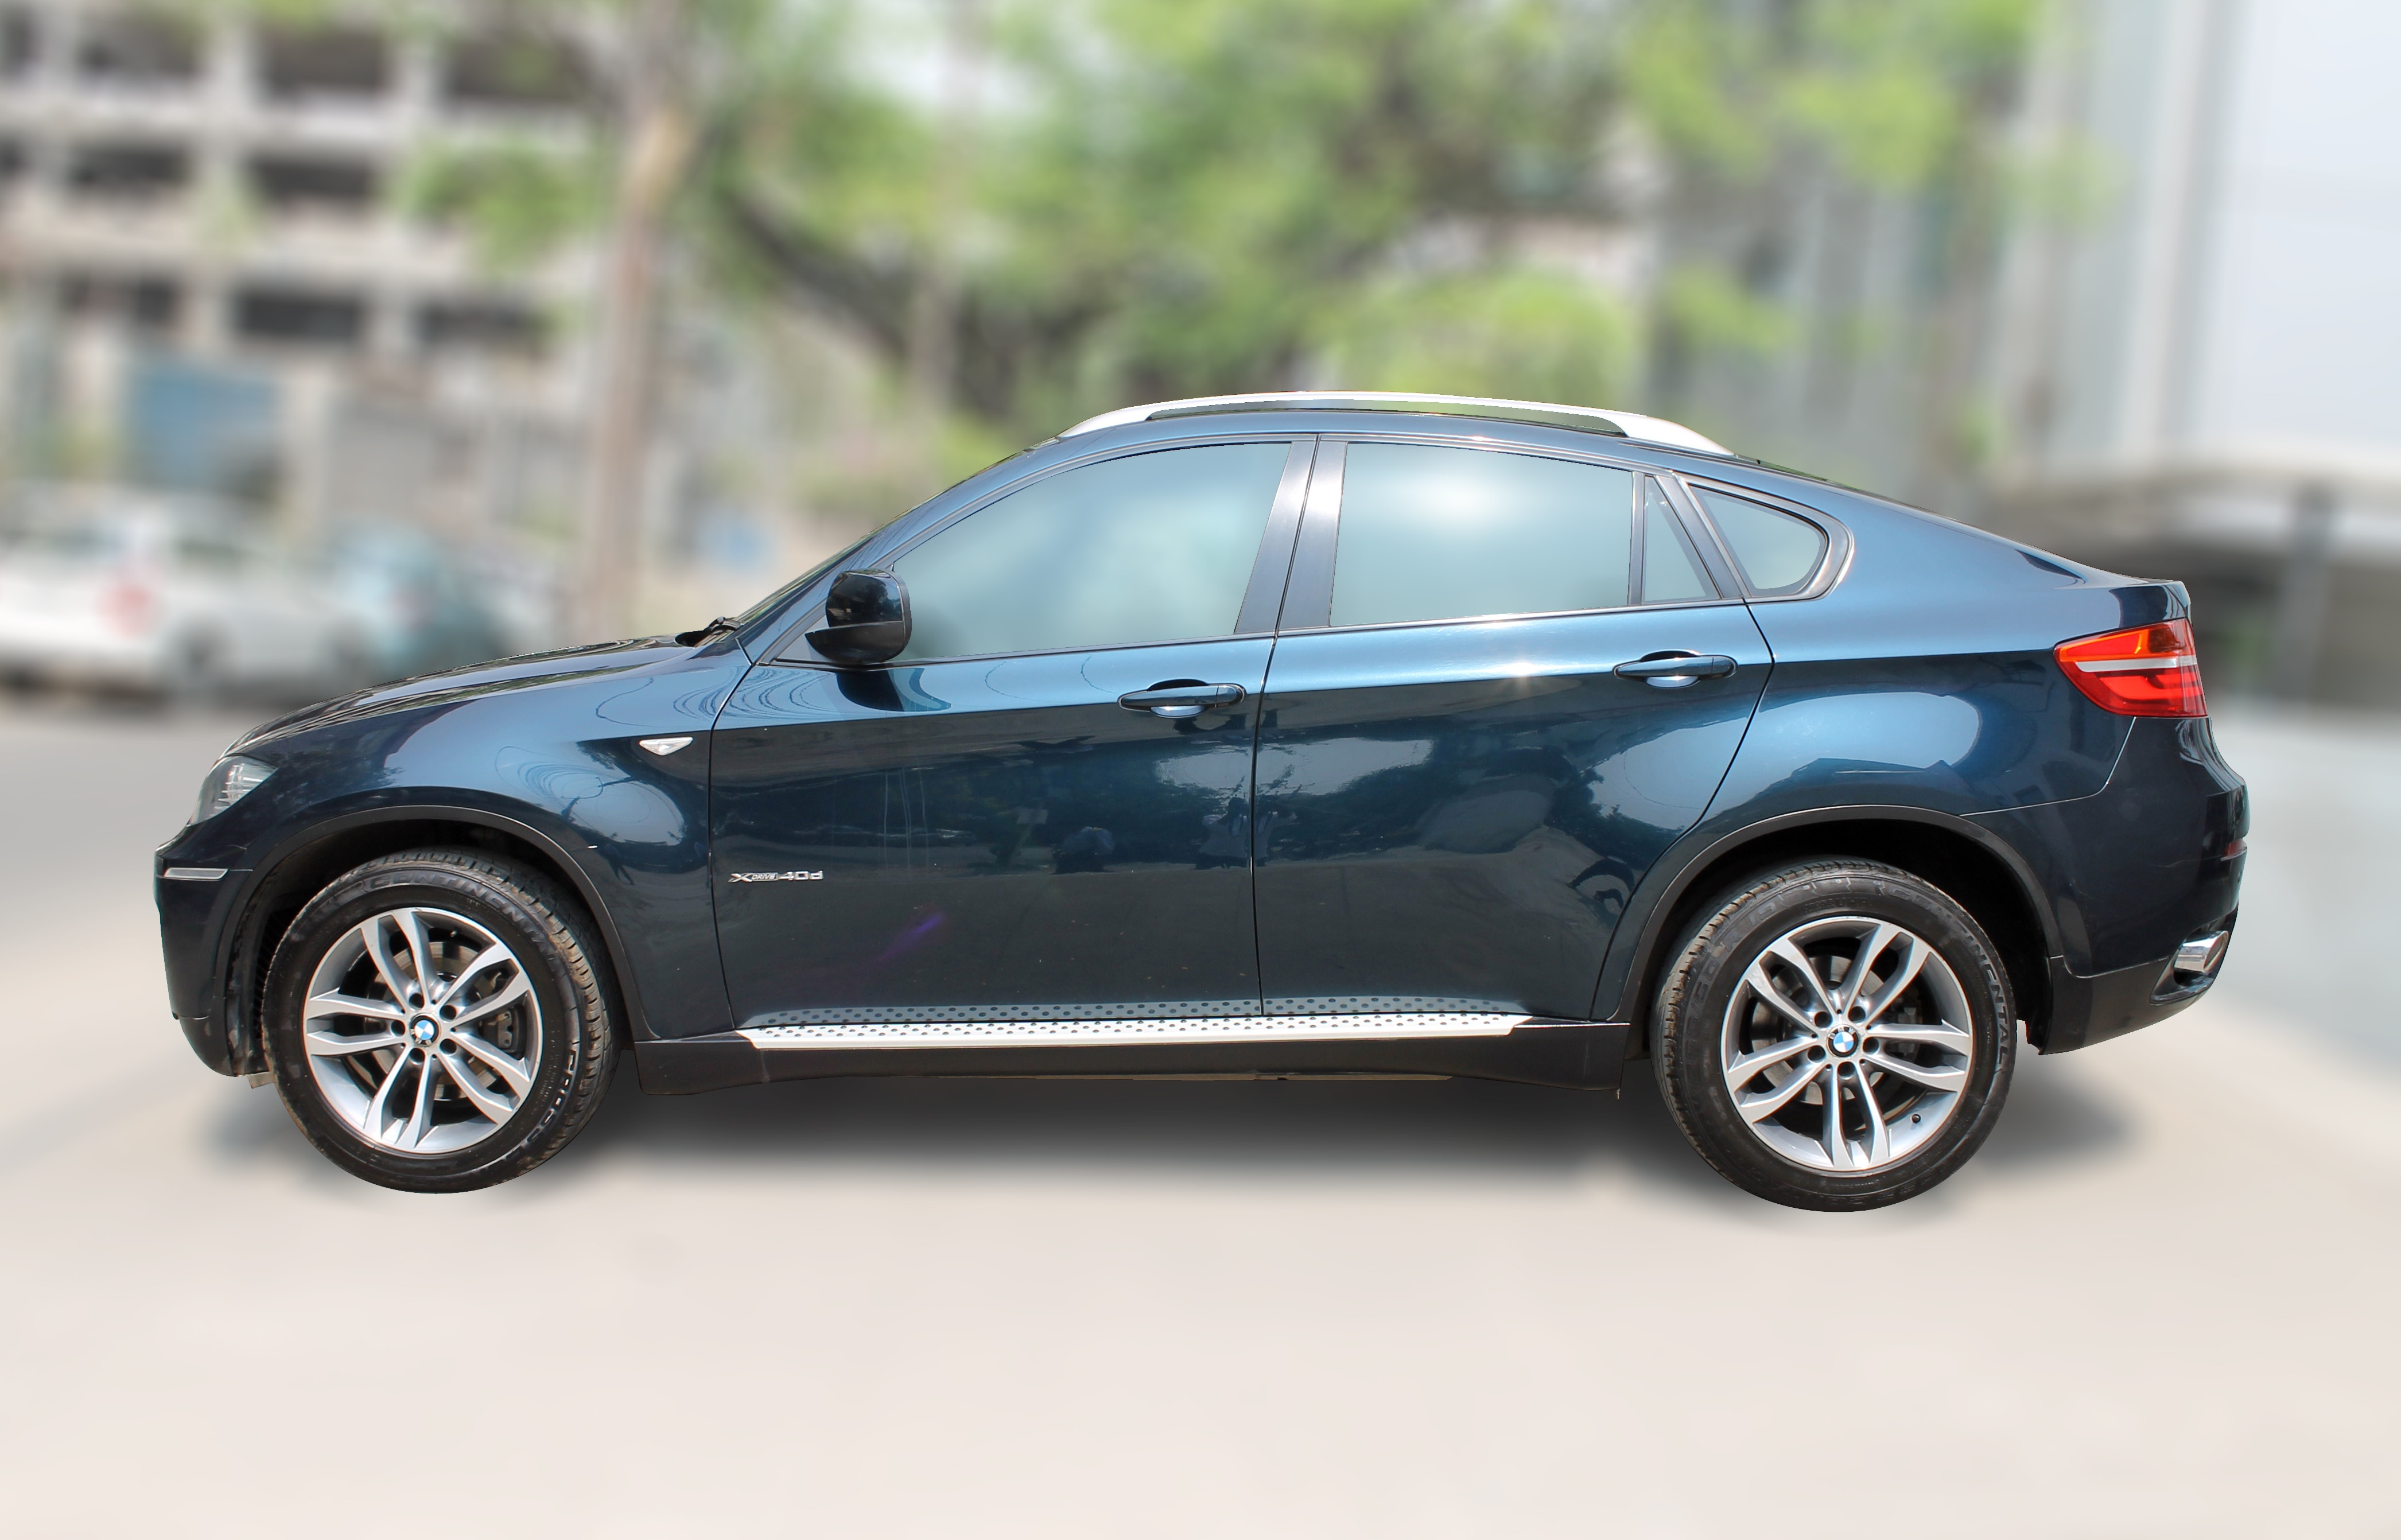 BMW X6 XDRIVE 40D (MIDNIGHT BLUE METALLIC COLOR, DIESEL), 2012 model done only 57, 000km in absolute mint condition. For further info call 7569696666